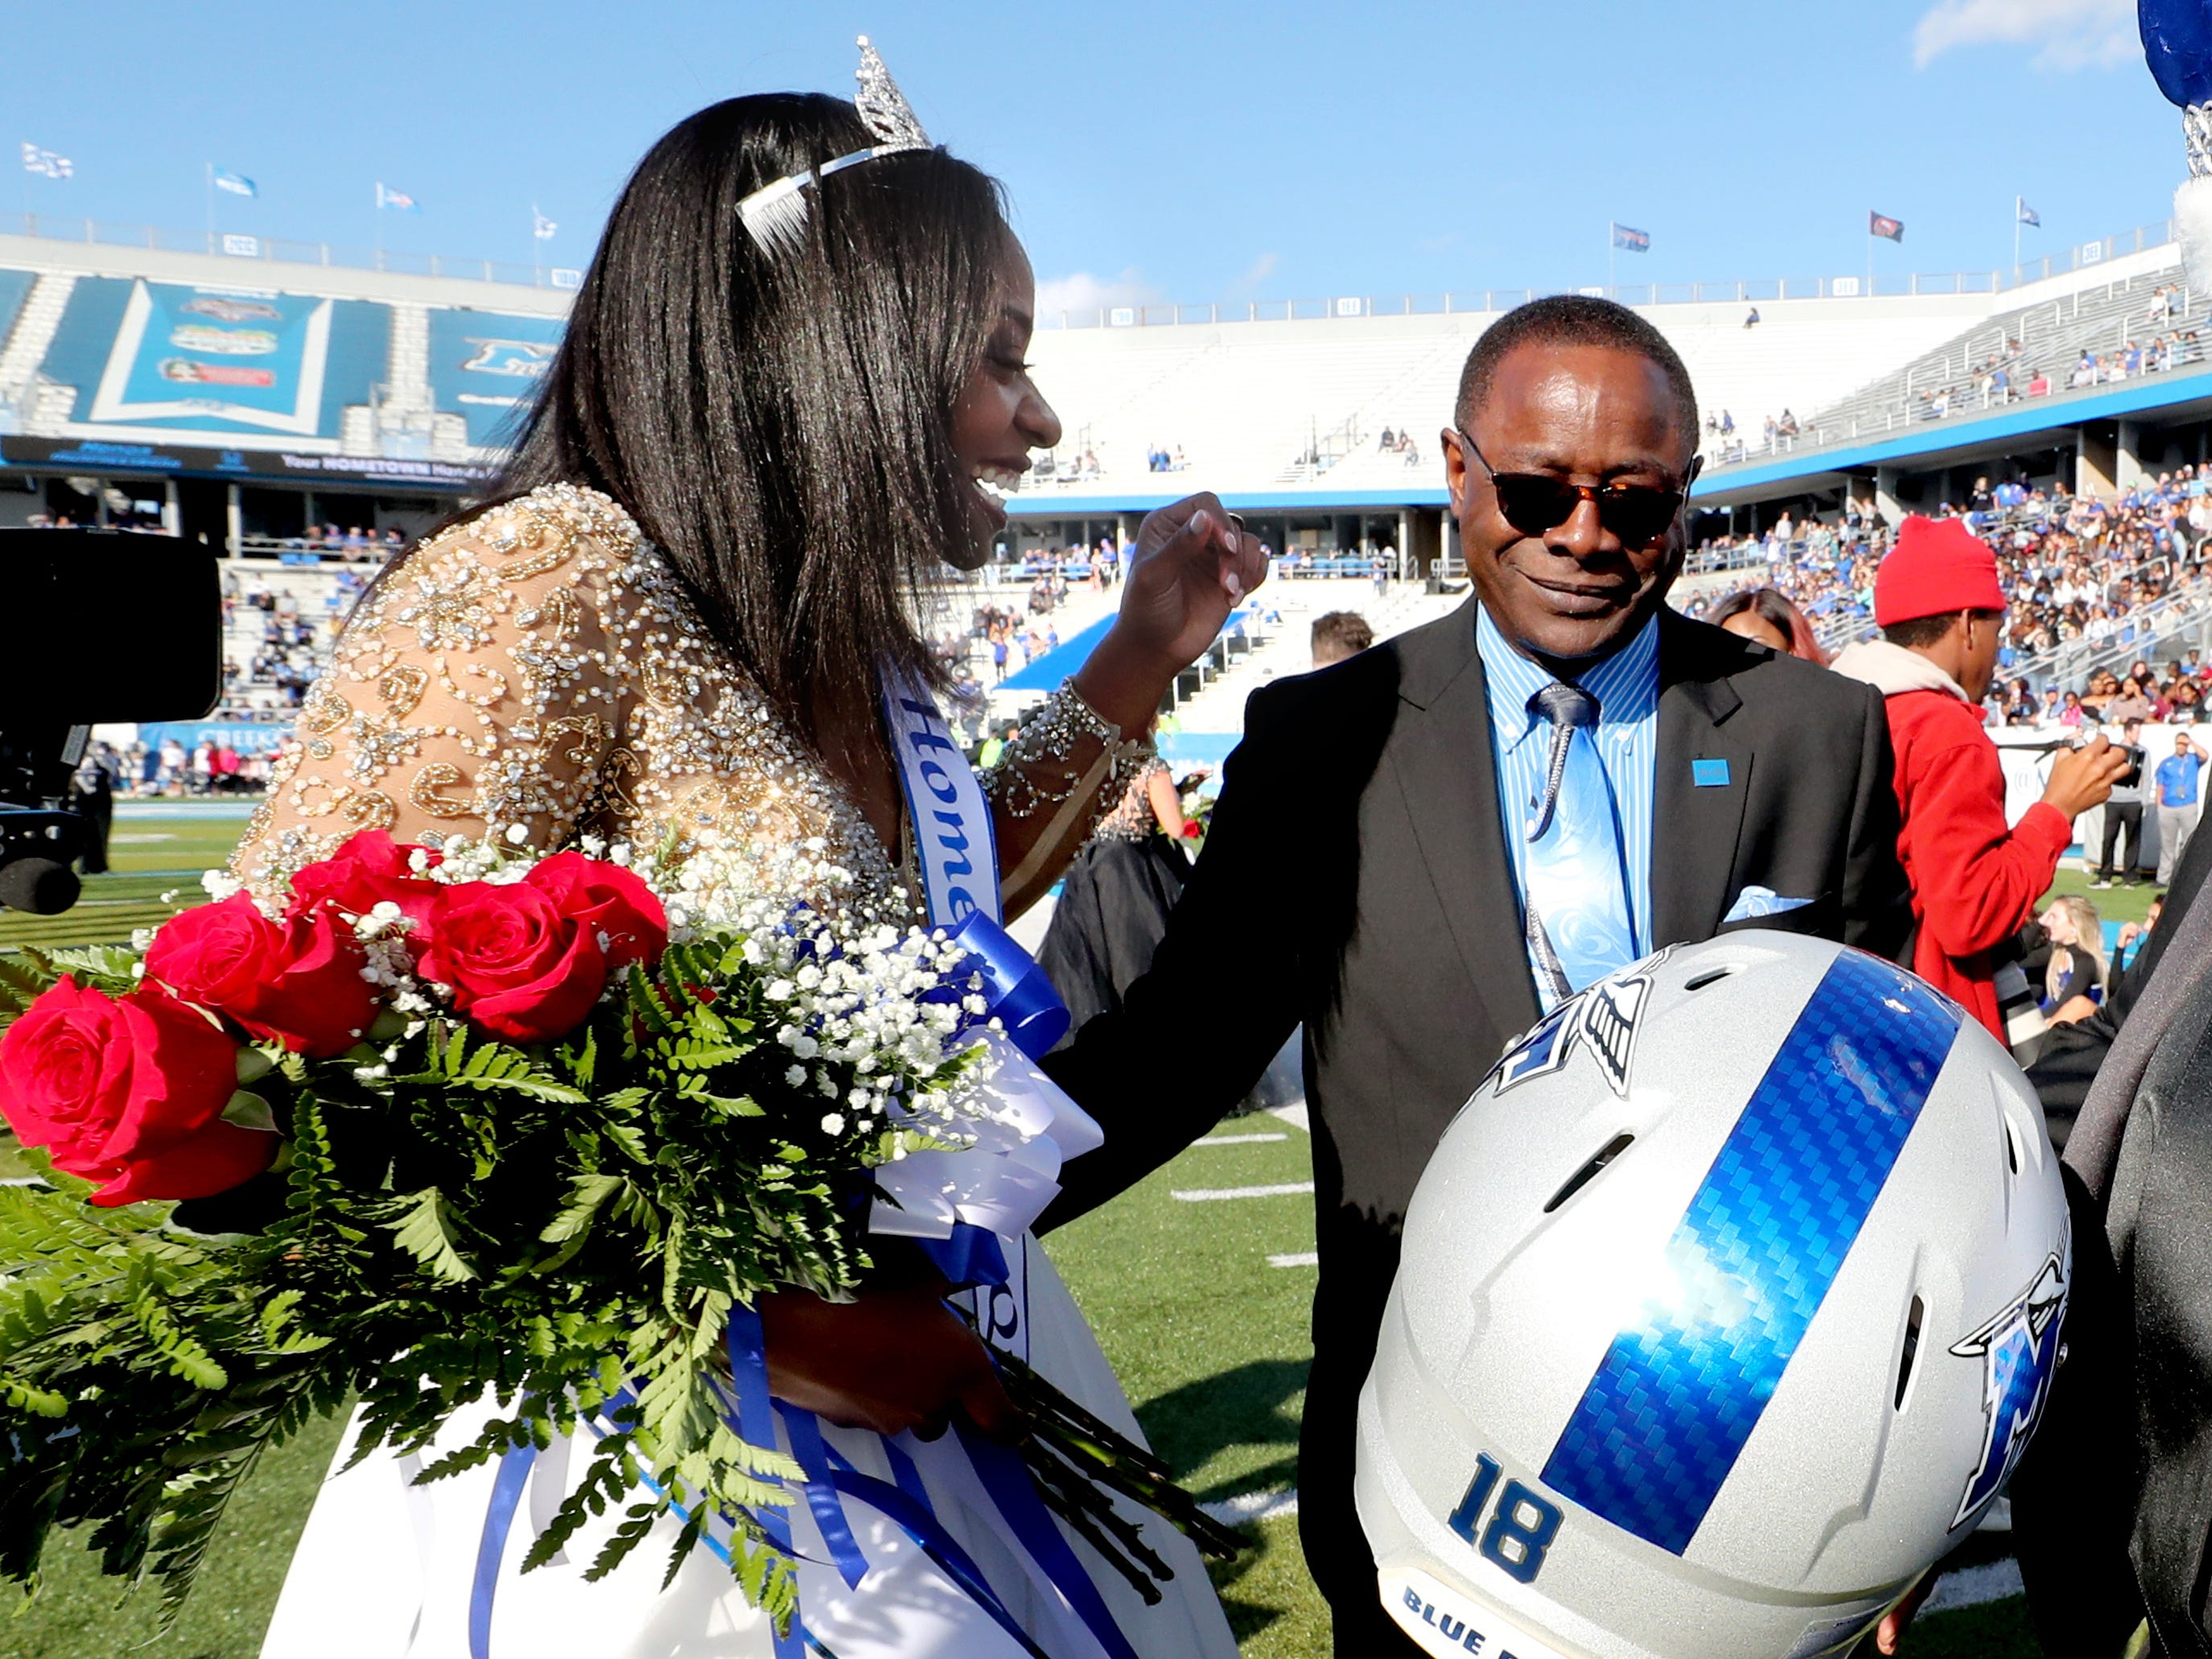 MTSU's Homecoming Queen Georgette Redmond reacts after being name MTSU's new Homecoming Queen with MTSU President Sidney McPhee gets during halftime of the game the Homecoming game against Charlotte, on Saturday, Oct. 20, 2018.